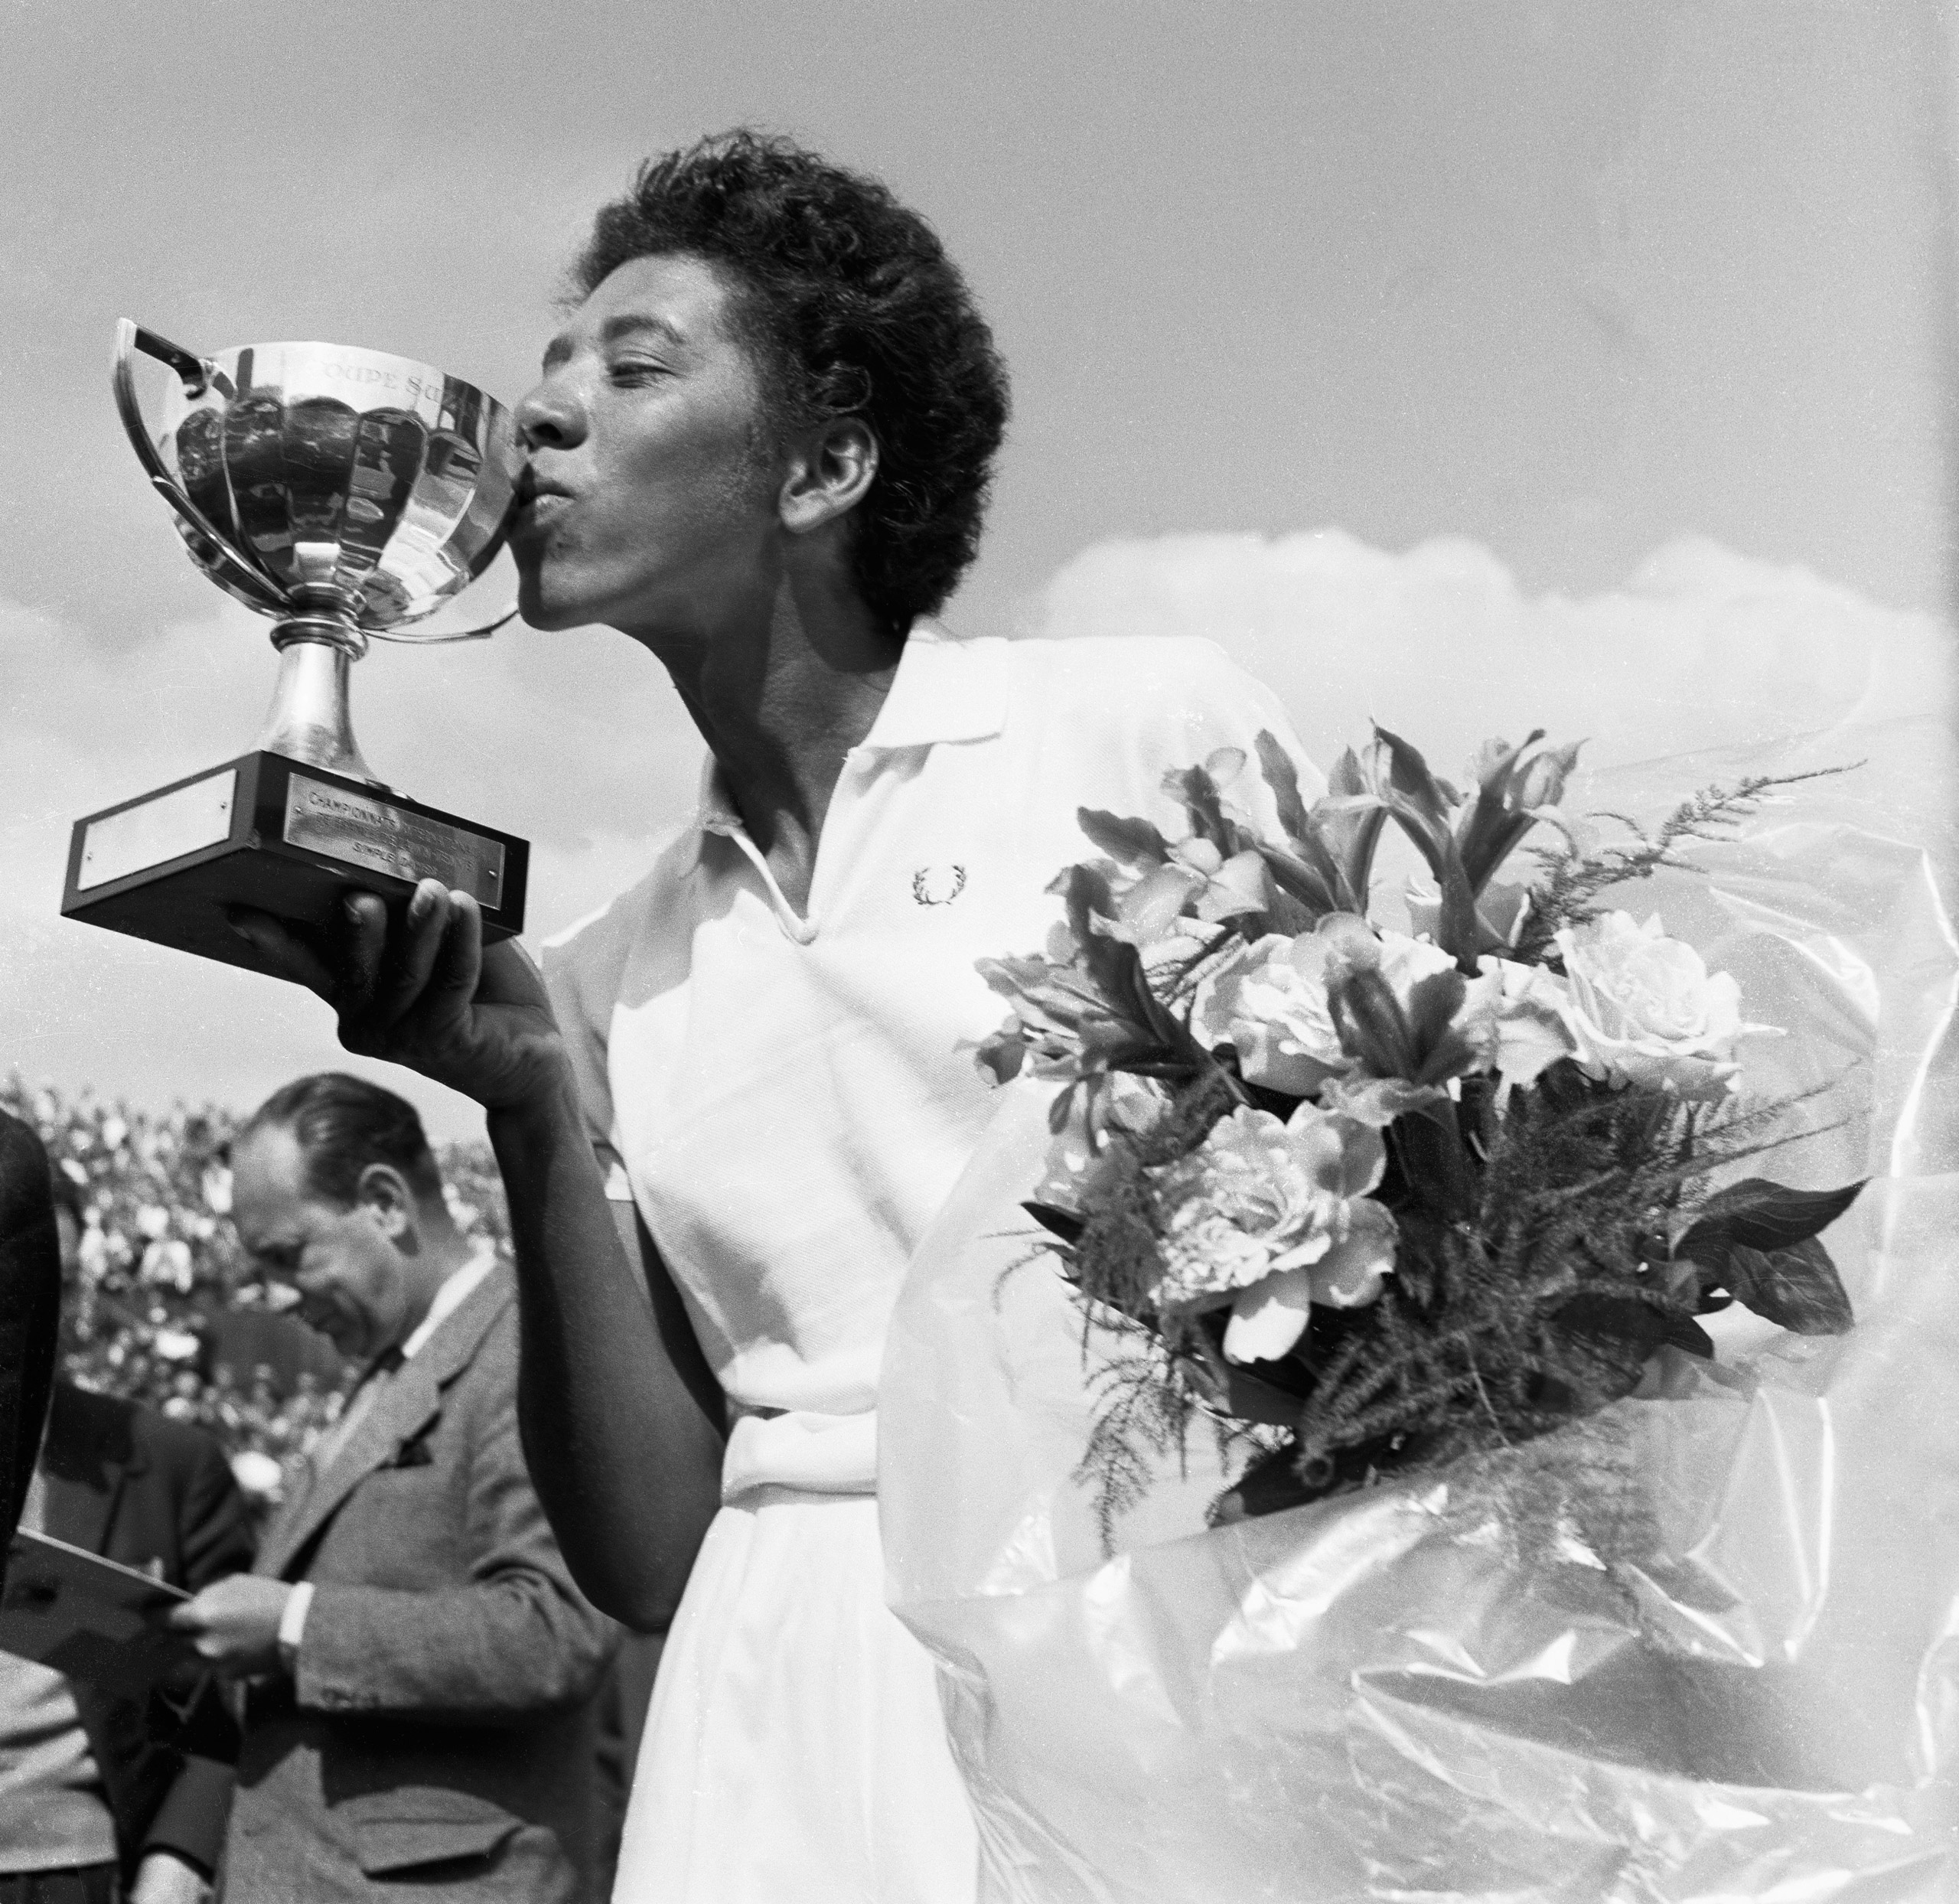 Althea Gibson kisses the cup she was rewarded with after having won the French International Tennis Championships in Paris, May 26, 1956. Gibson broke the U.S. national championships color barrier and was on the cover of TIME in 1957.